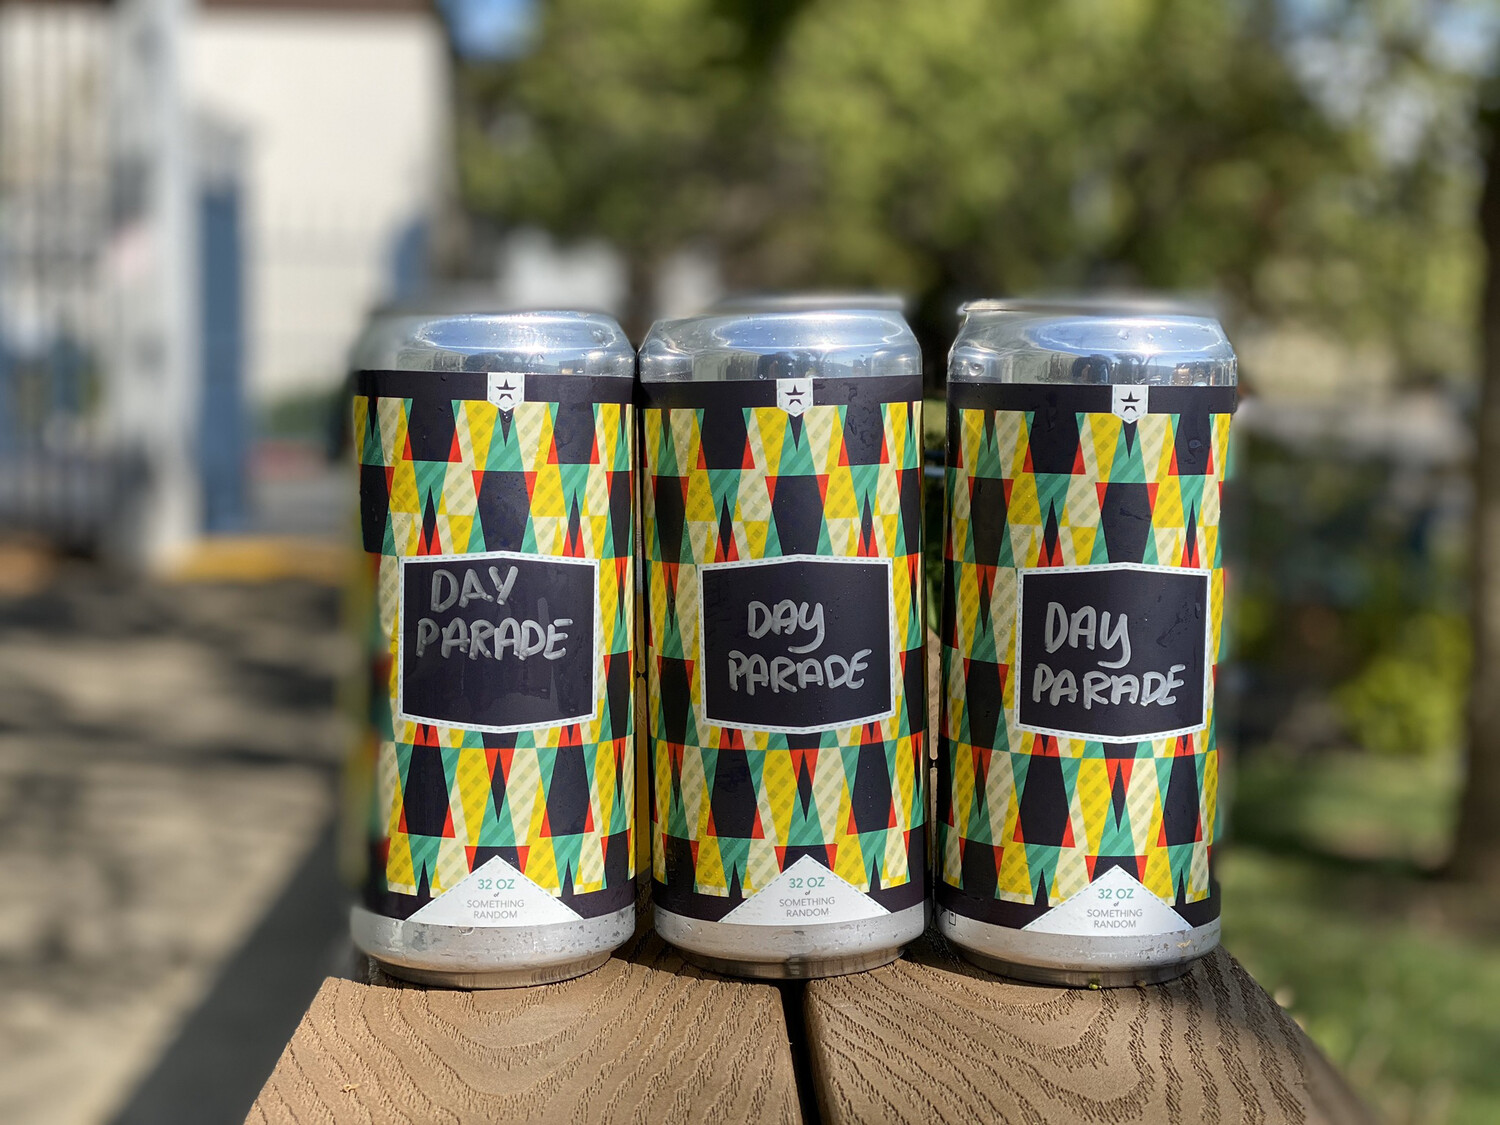 3 Pack Of Day Parade Crowlers